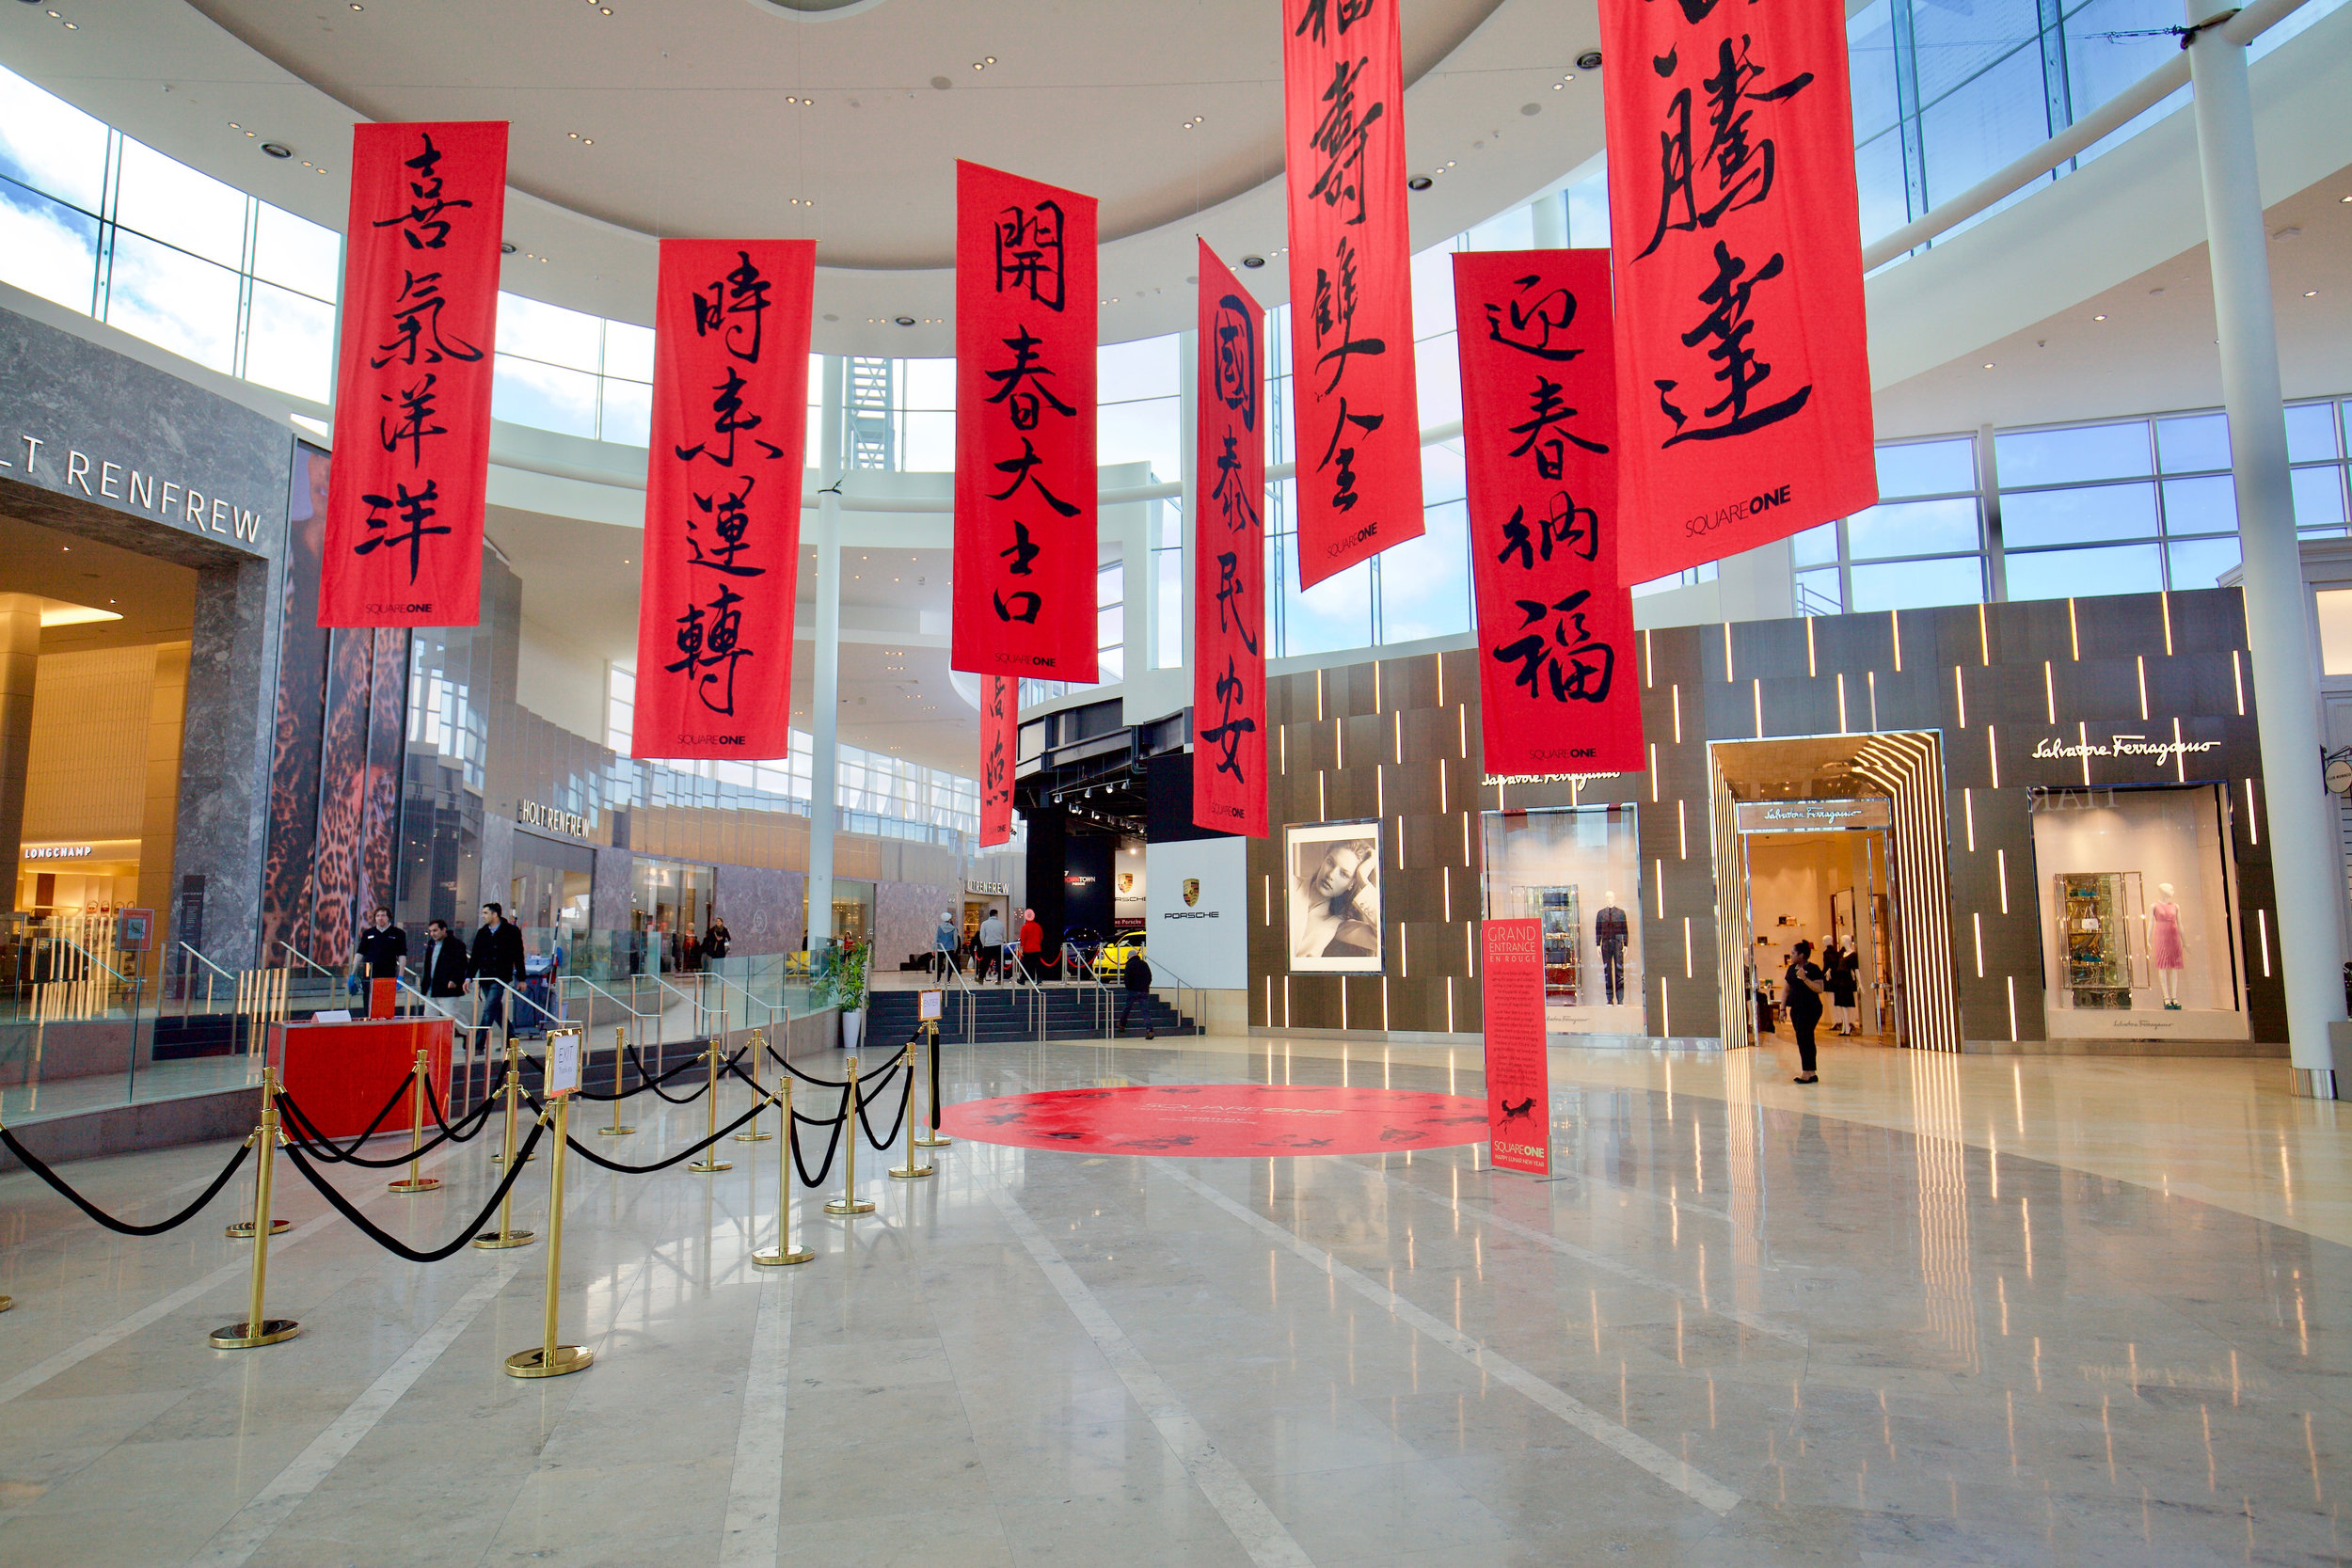 Square One Shopping Centre | Grand Entrance En Rouge Art Installation